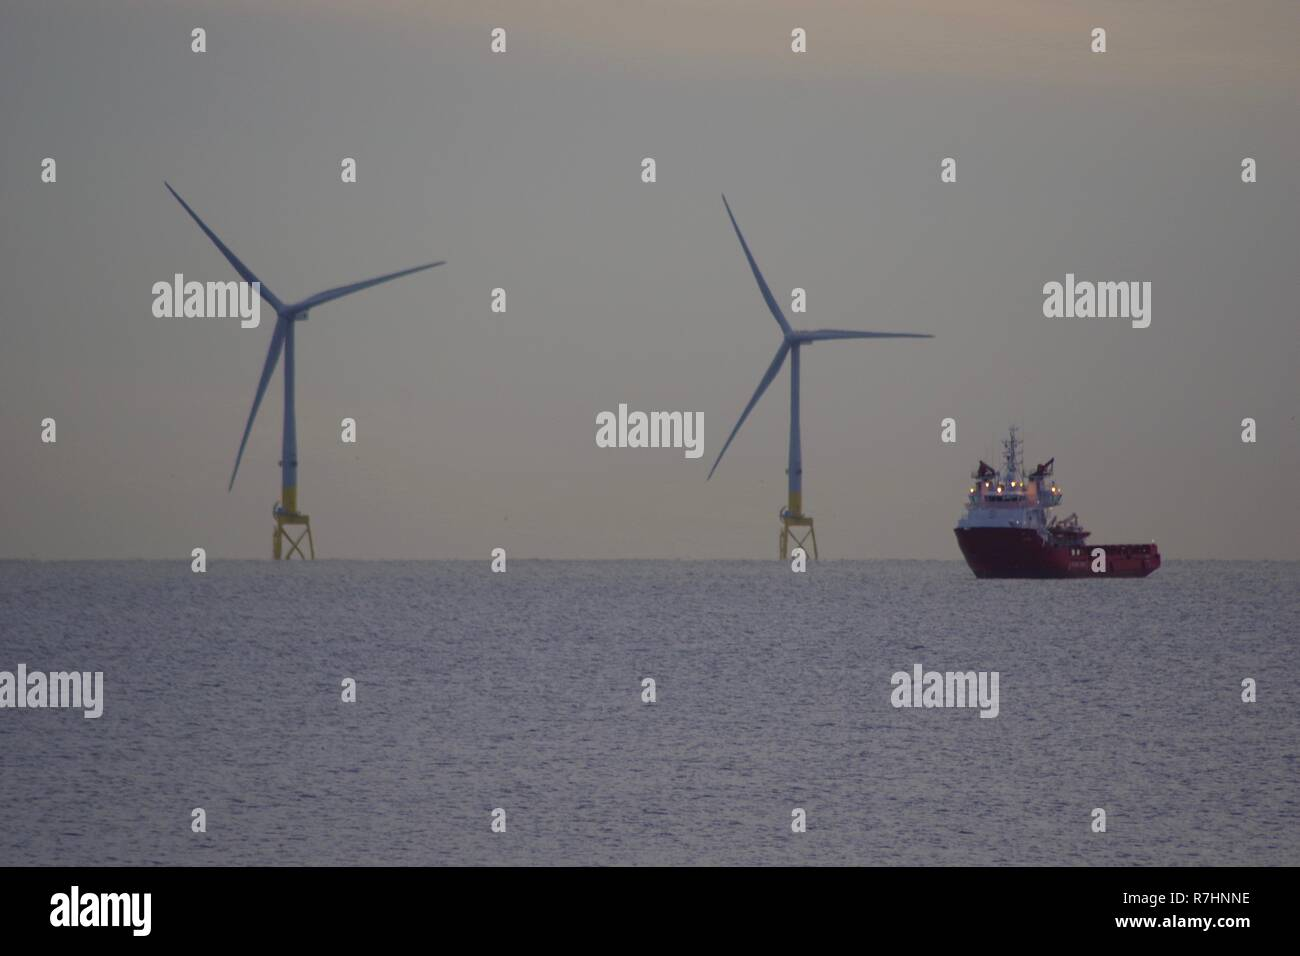 European Offshore Wind Deployment Centre. Renewable Energy Wind Farm, Offshore Aberdeen.  Pair of Wind Turbines and Maintenance Ship. Scotland, UK. - Stock Image